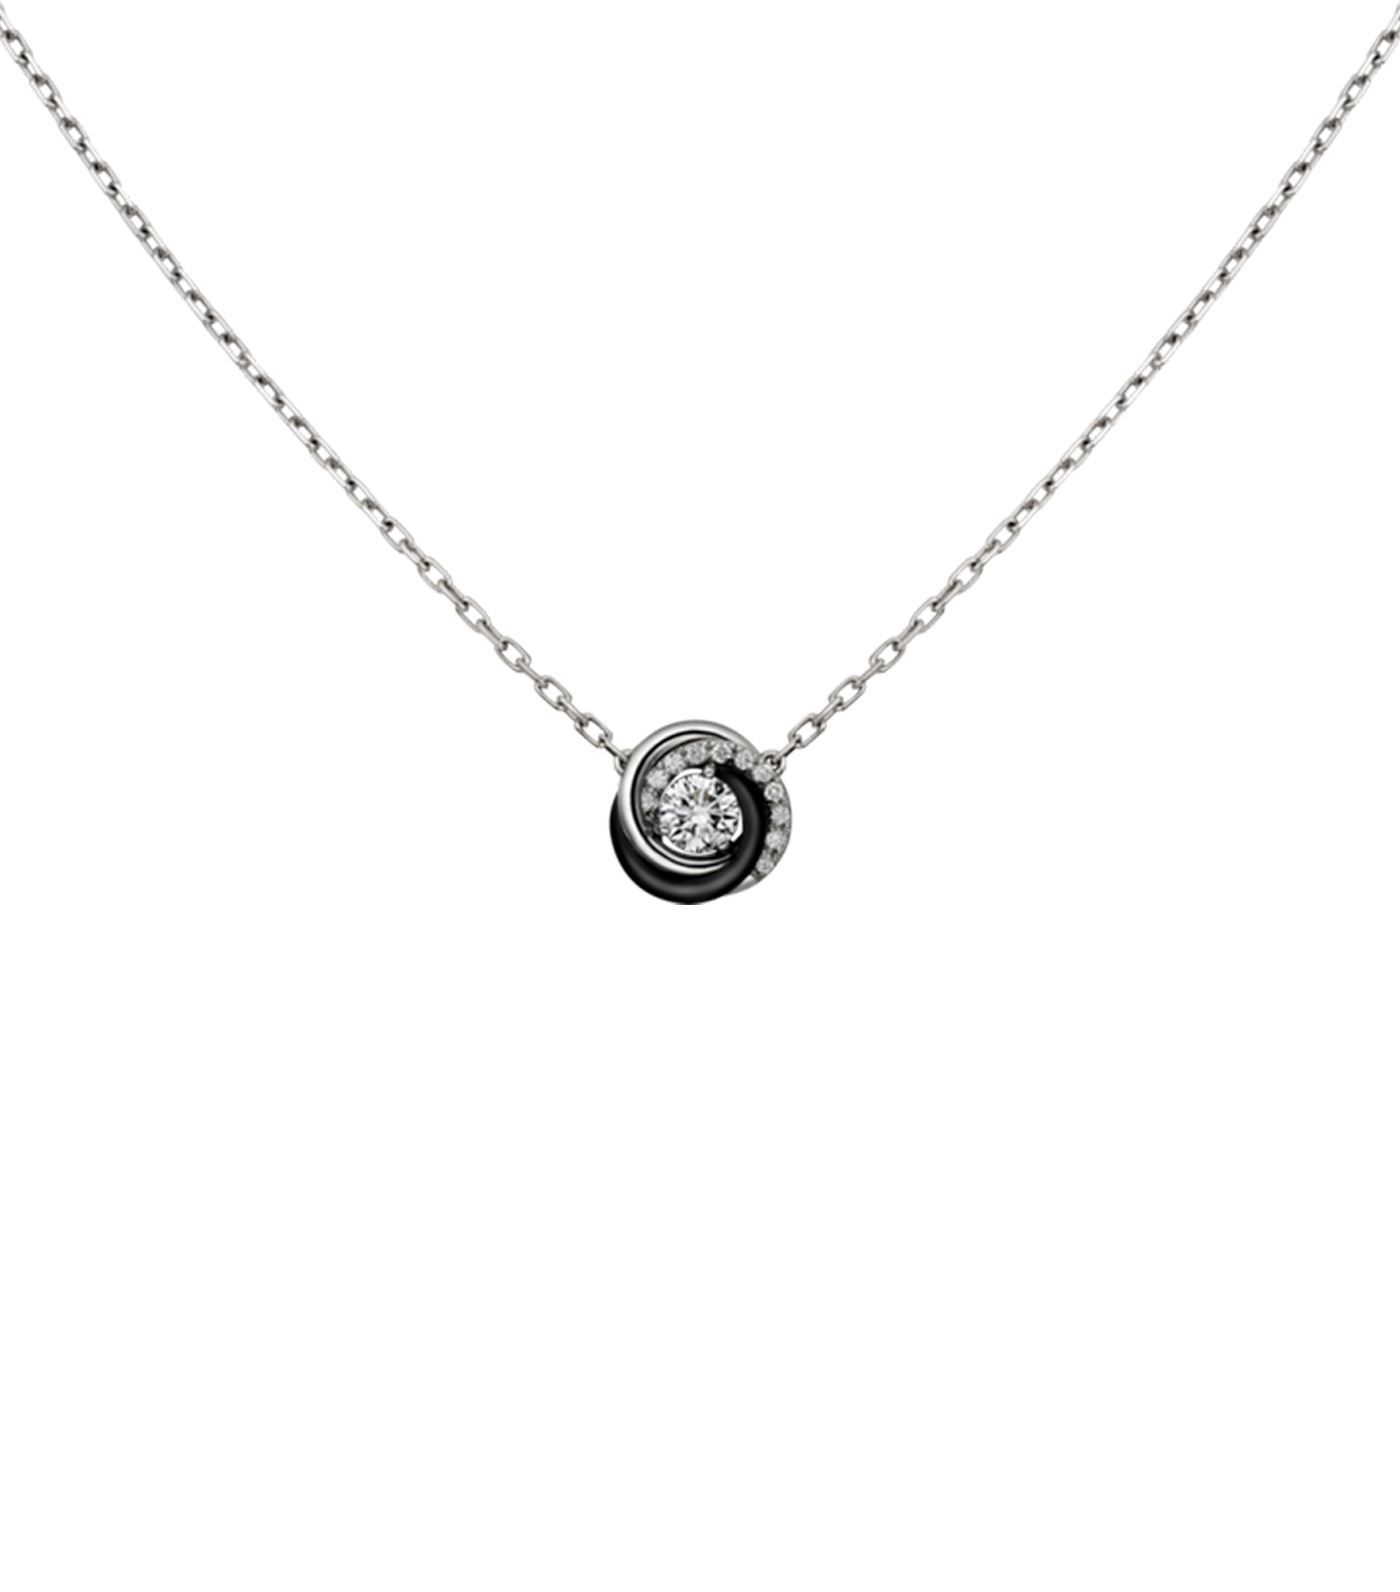 Cartier cartier cartier pinterest cartier diamond cartier diamond pendantcartierpendant aloadofball Images